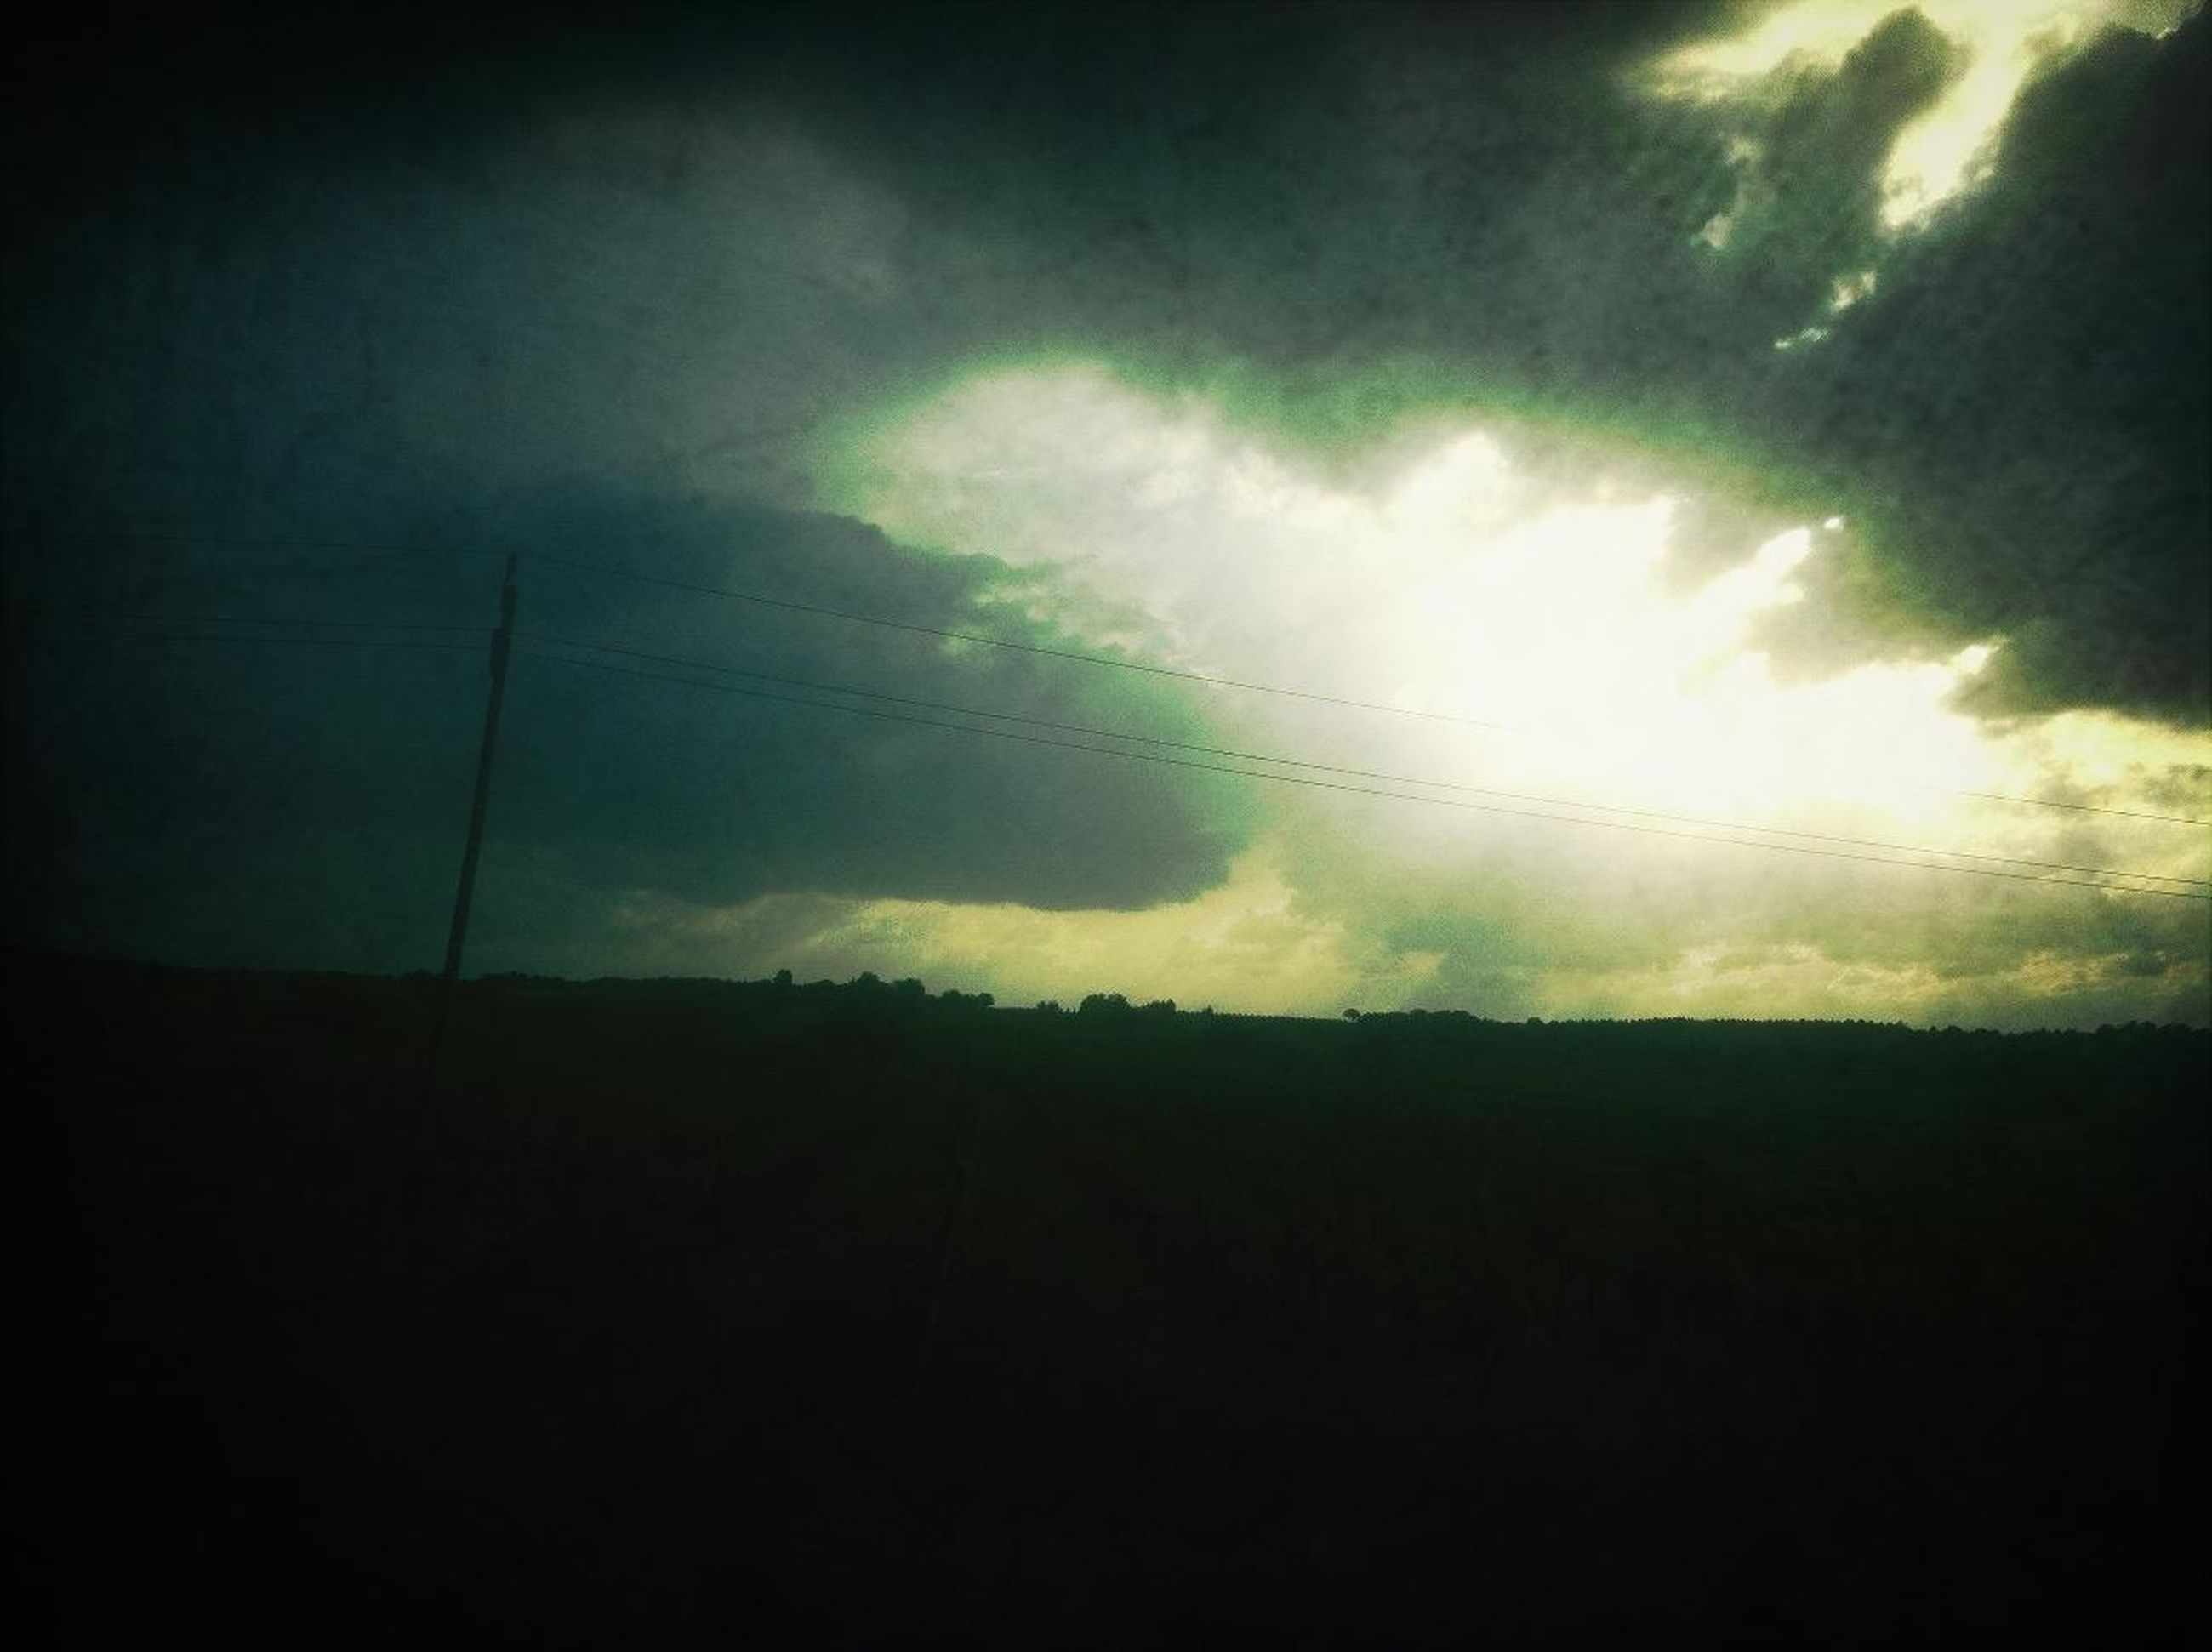 sky, silhouette, cloud - sky, scenics, landscape, tranquil scene, cloudy, tranquility, dark, beauty in nature, low angle view, weather, nature, storm cloud, overcast, dramatic sky, cloud, dusk, copy space, outdoors